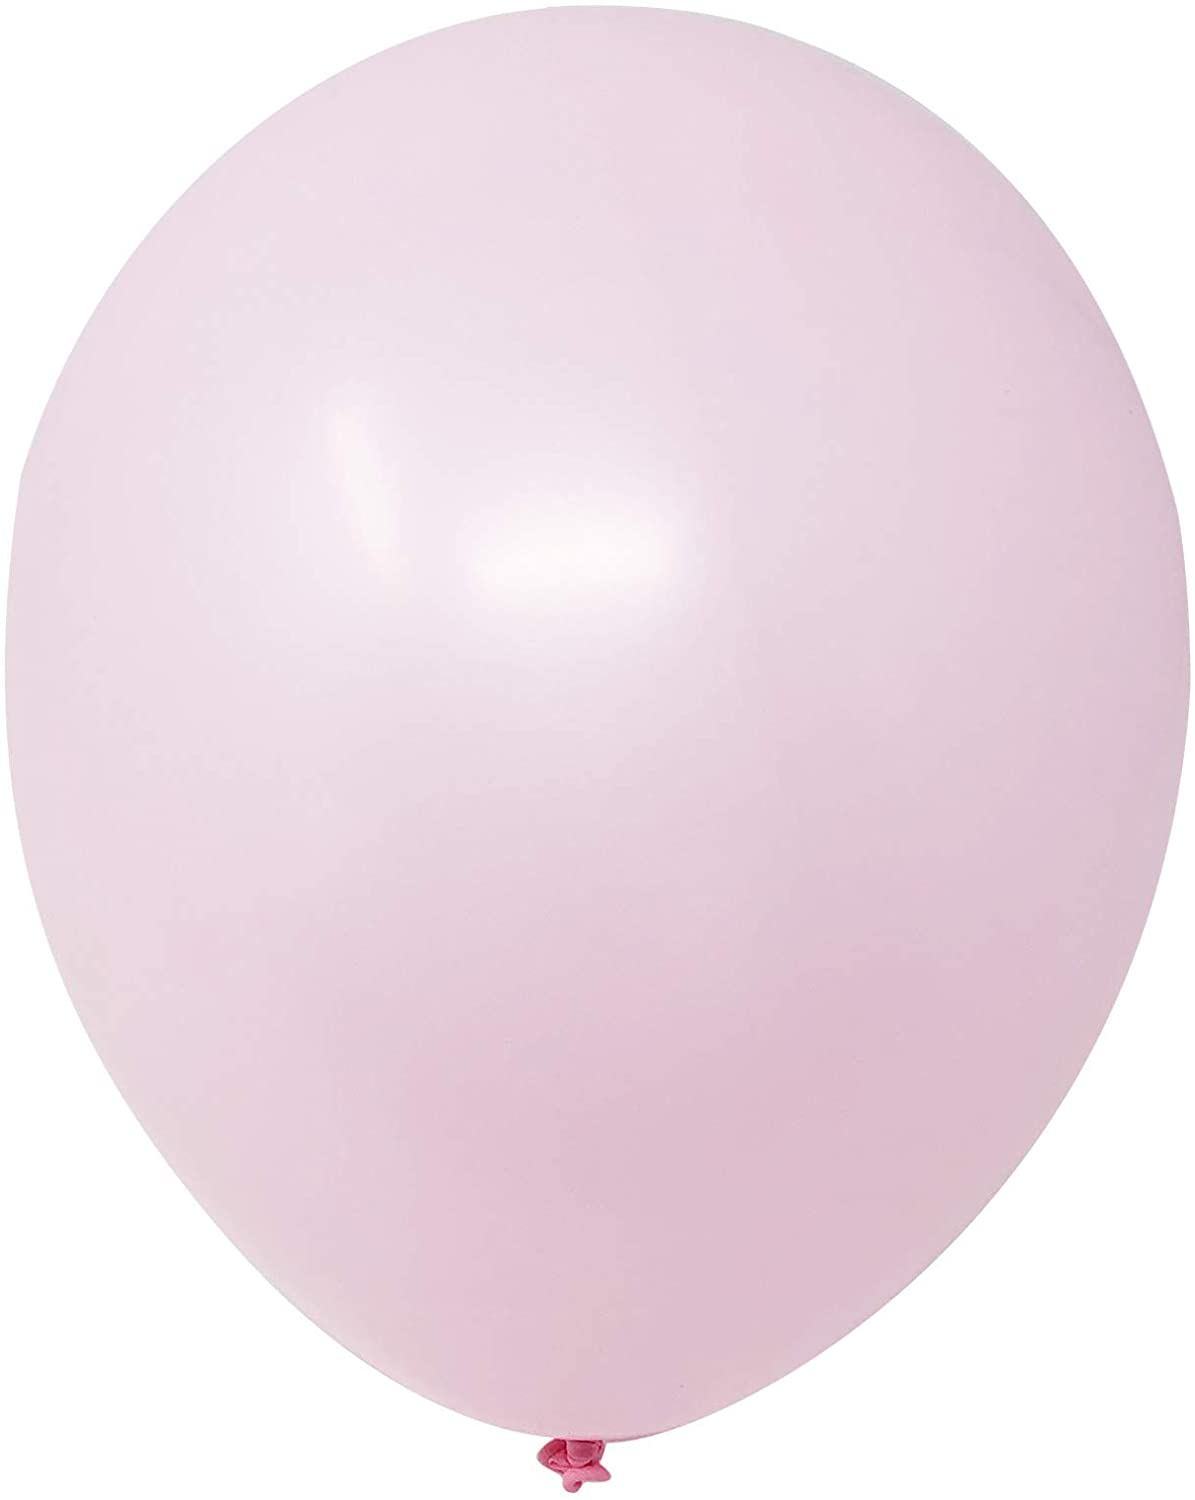 Tea pink latex balloons for sale online delivery in Dubai